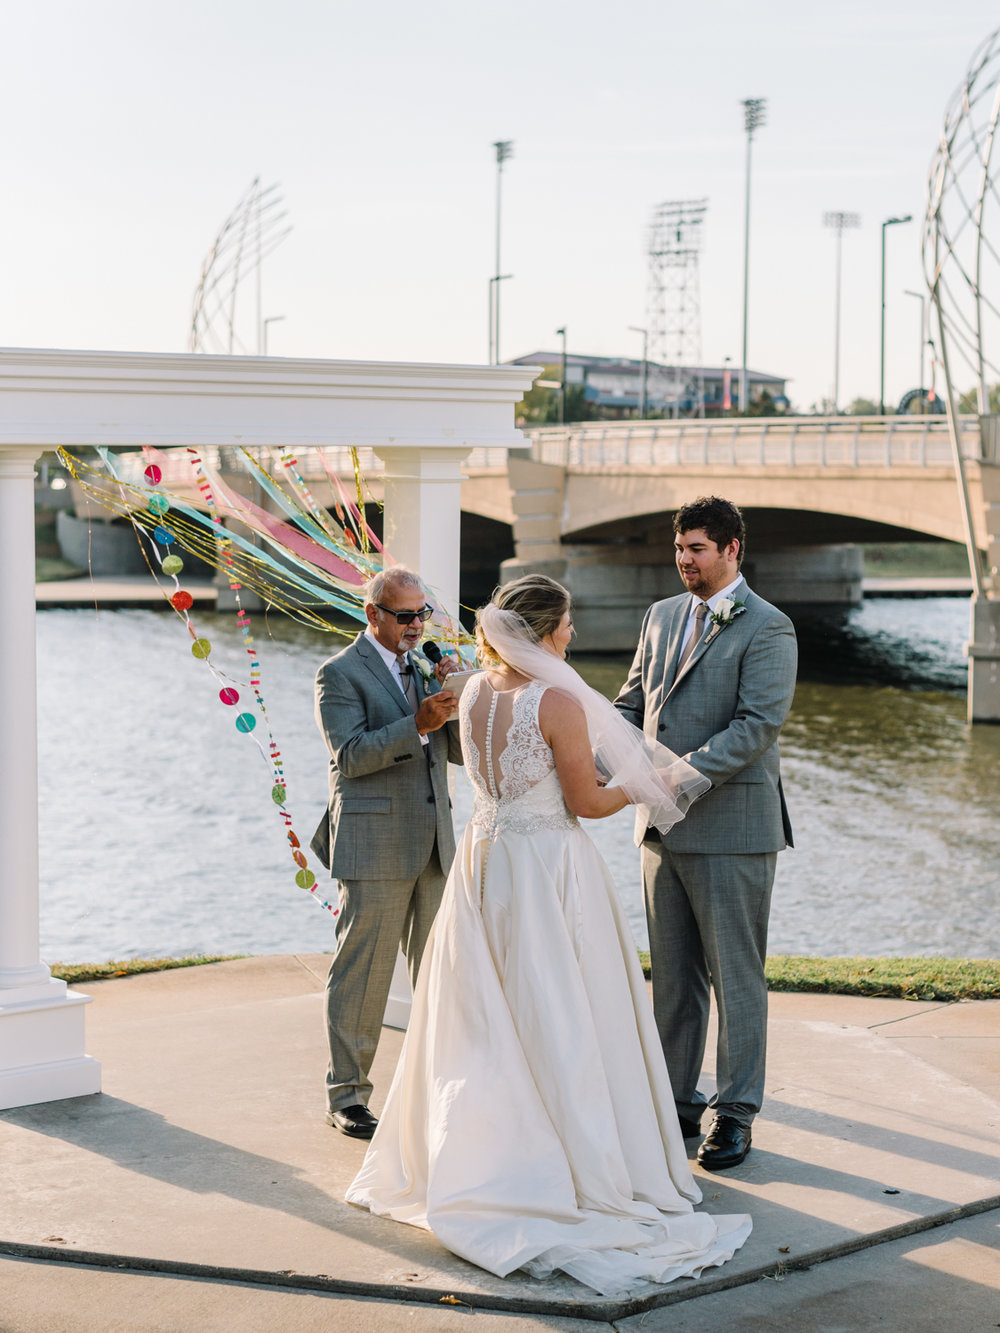 Wichita, Kansas Wedding Photographer-Neal Dieker-Wichita Boathouse Wedding-Wichita, Kansas Outdoor Wedding-186.jpg